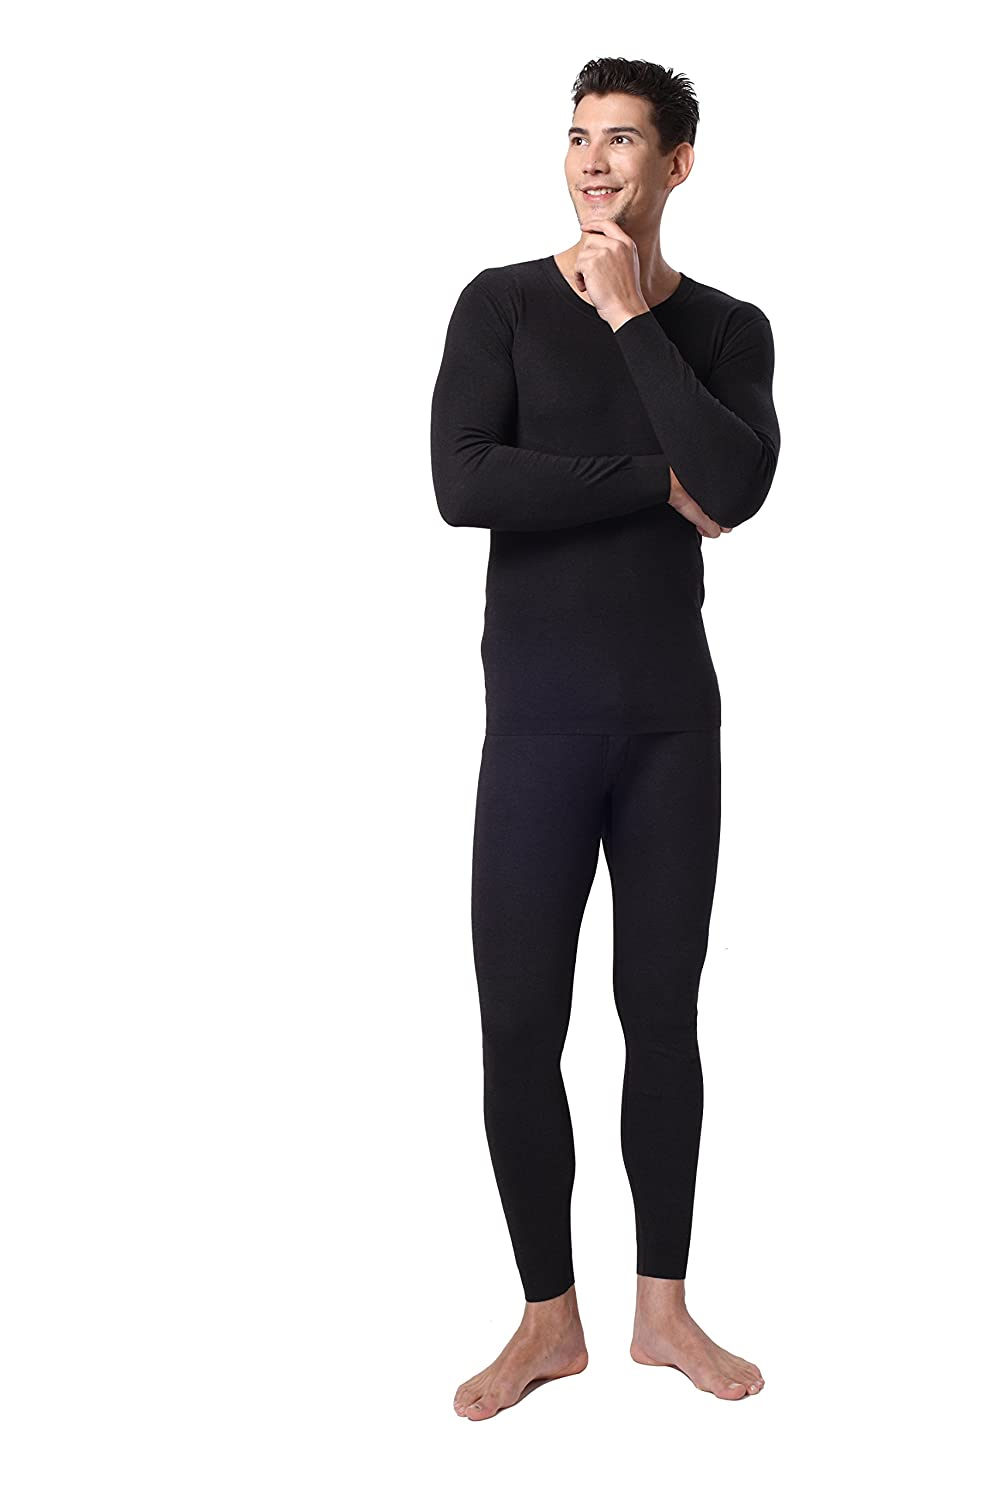 19fd11ff873a Mens 2-PC Ultra Soft Thermal Underwear Set Waffle Knit Long Johns Top and  Bottom 100% Cotton at Amazon Men's Clothing store: